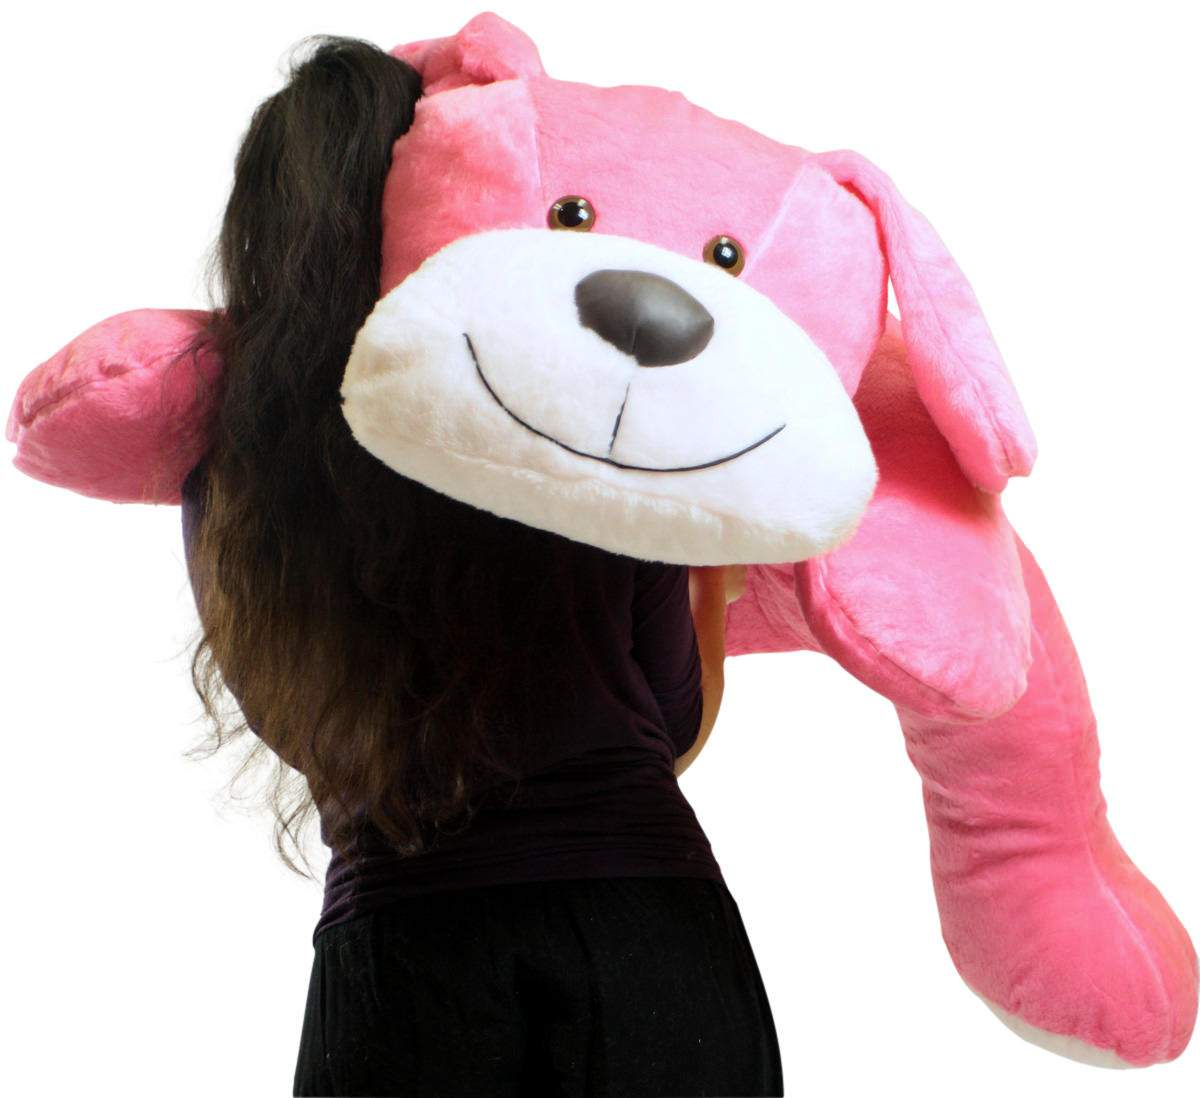 8d6ec5a7413 Giant Stuffed Pink Dog 5 Foot Big Plush Puppy Soft 60 Inch Snuggle Buddy  Made in ...